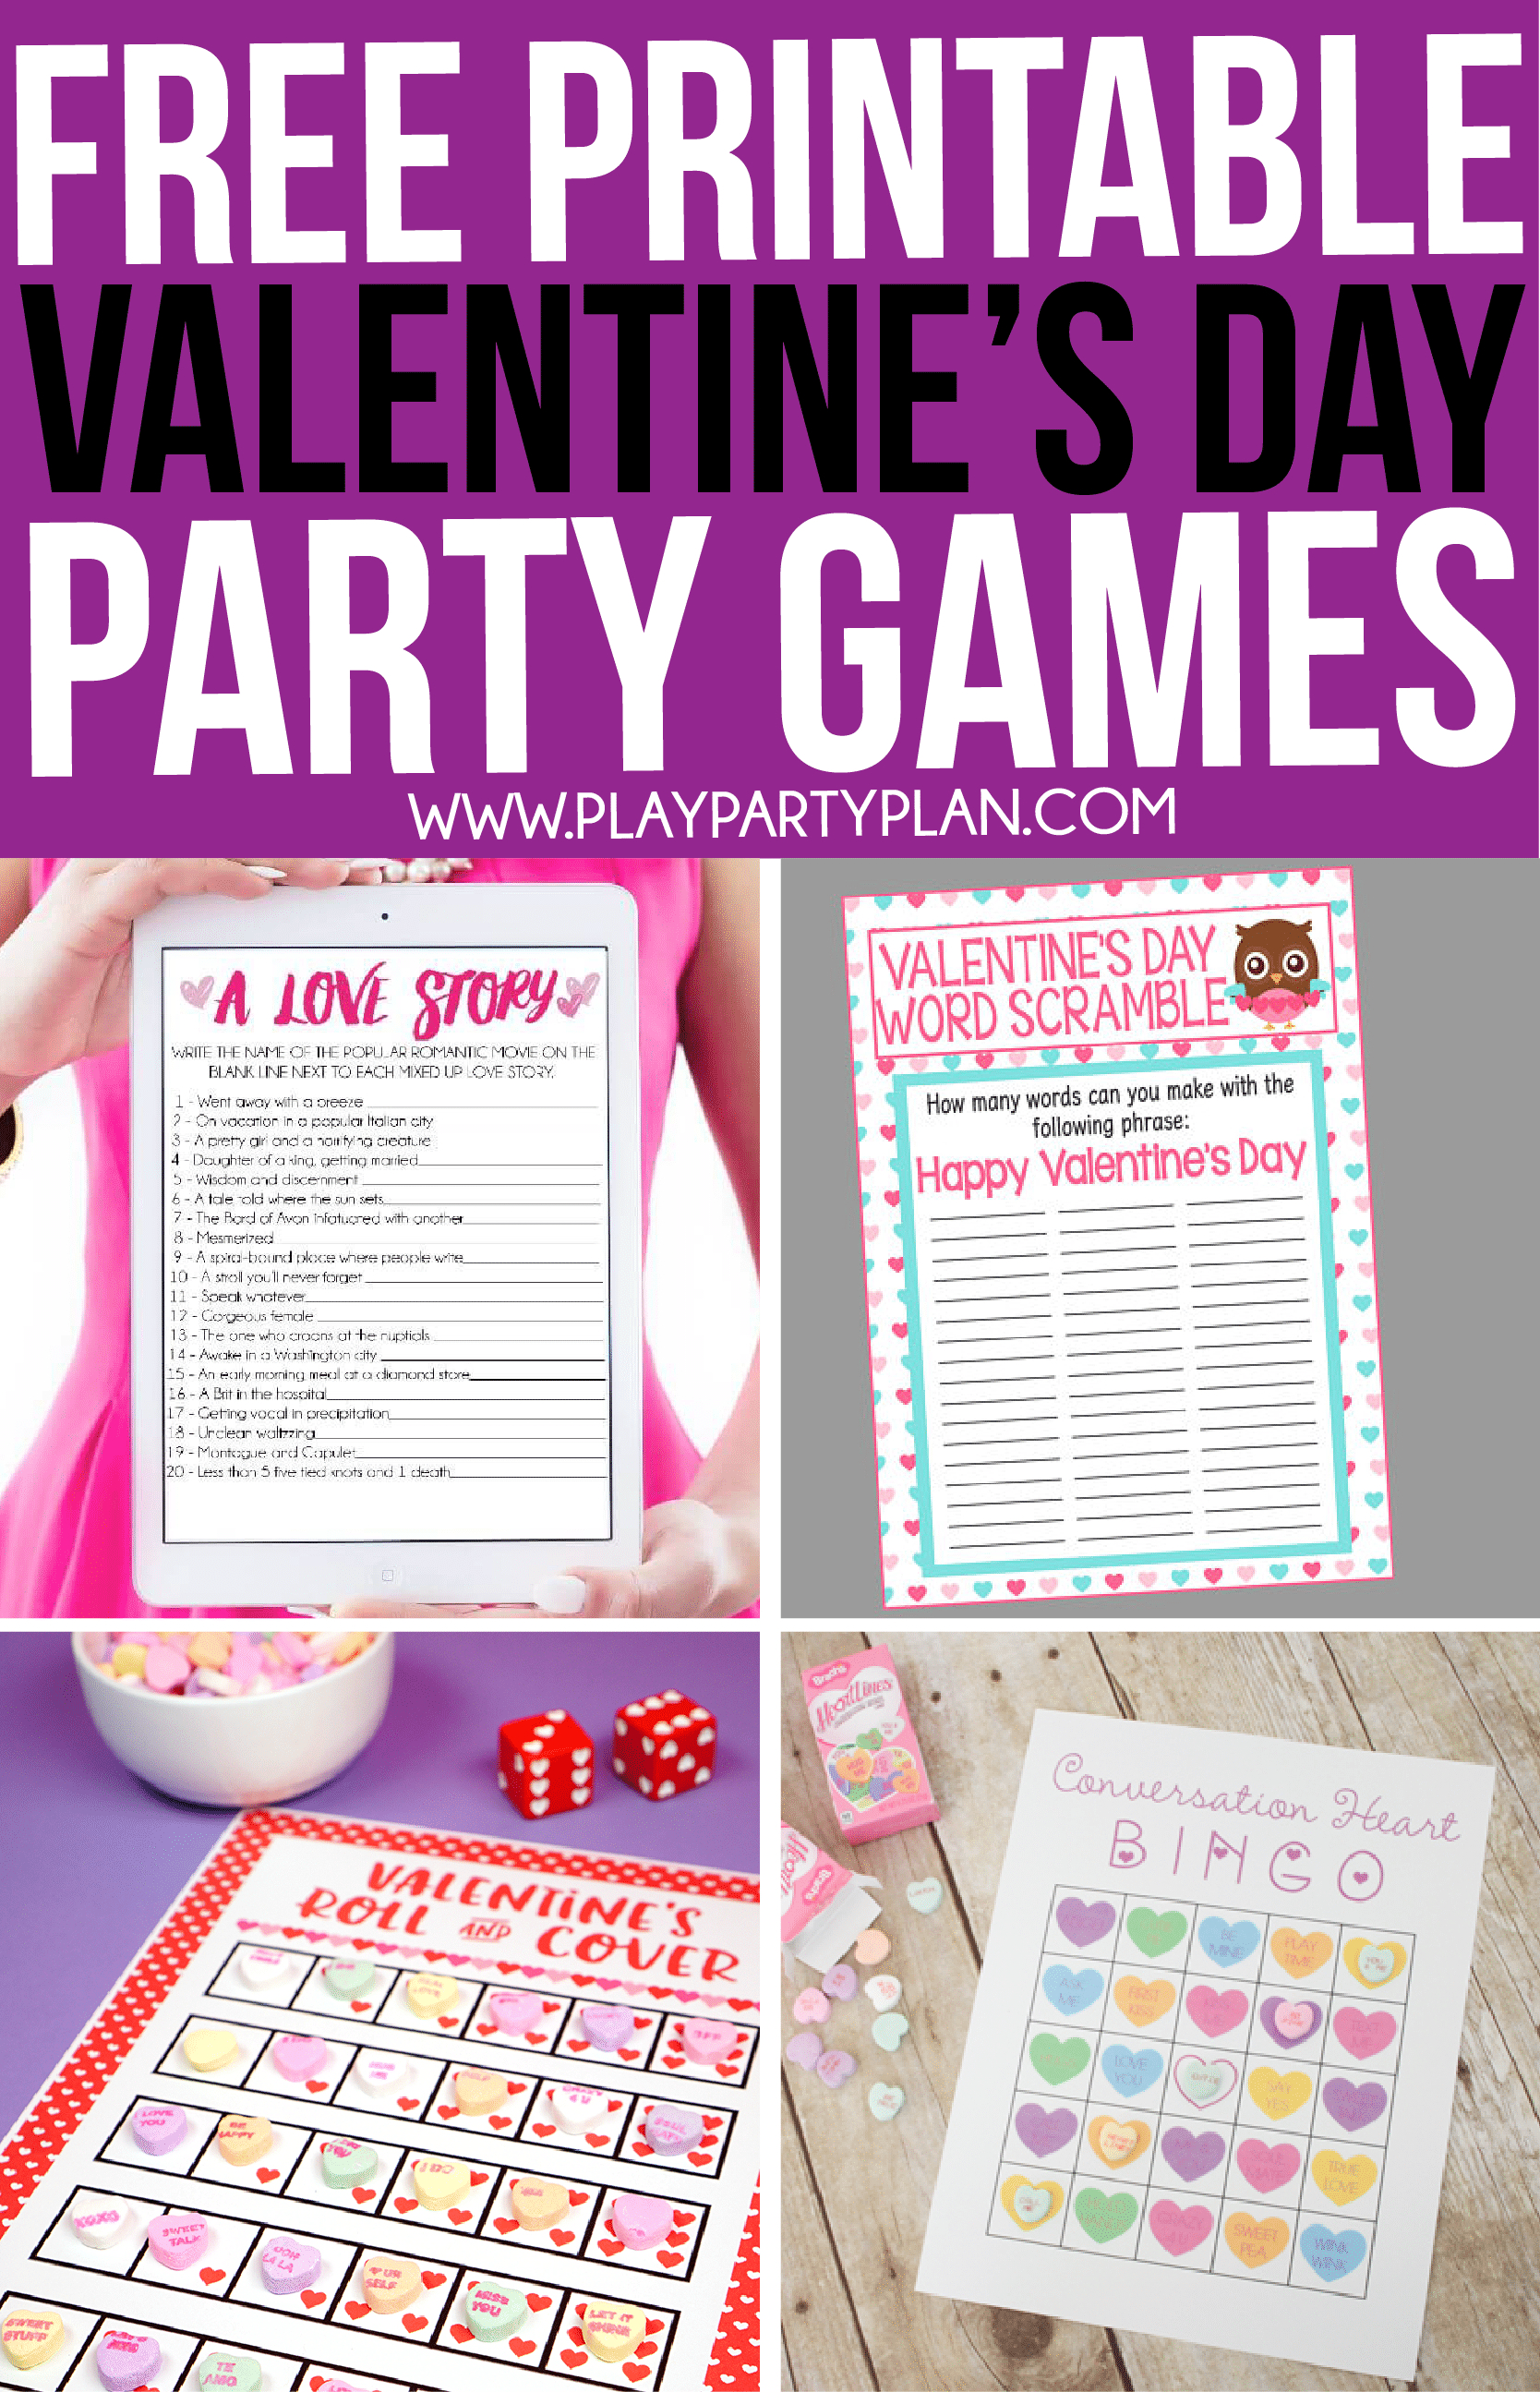 30 Valentine's Day Games Everyone Will Absolutely Love - Play Party Plan - Free Printable Valentine Game